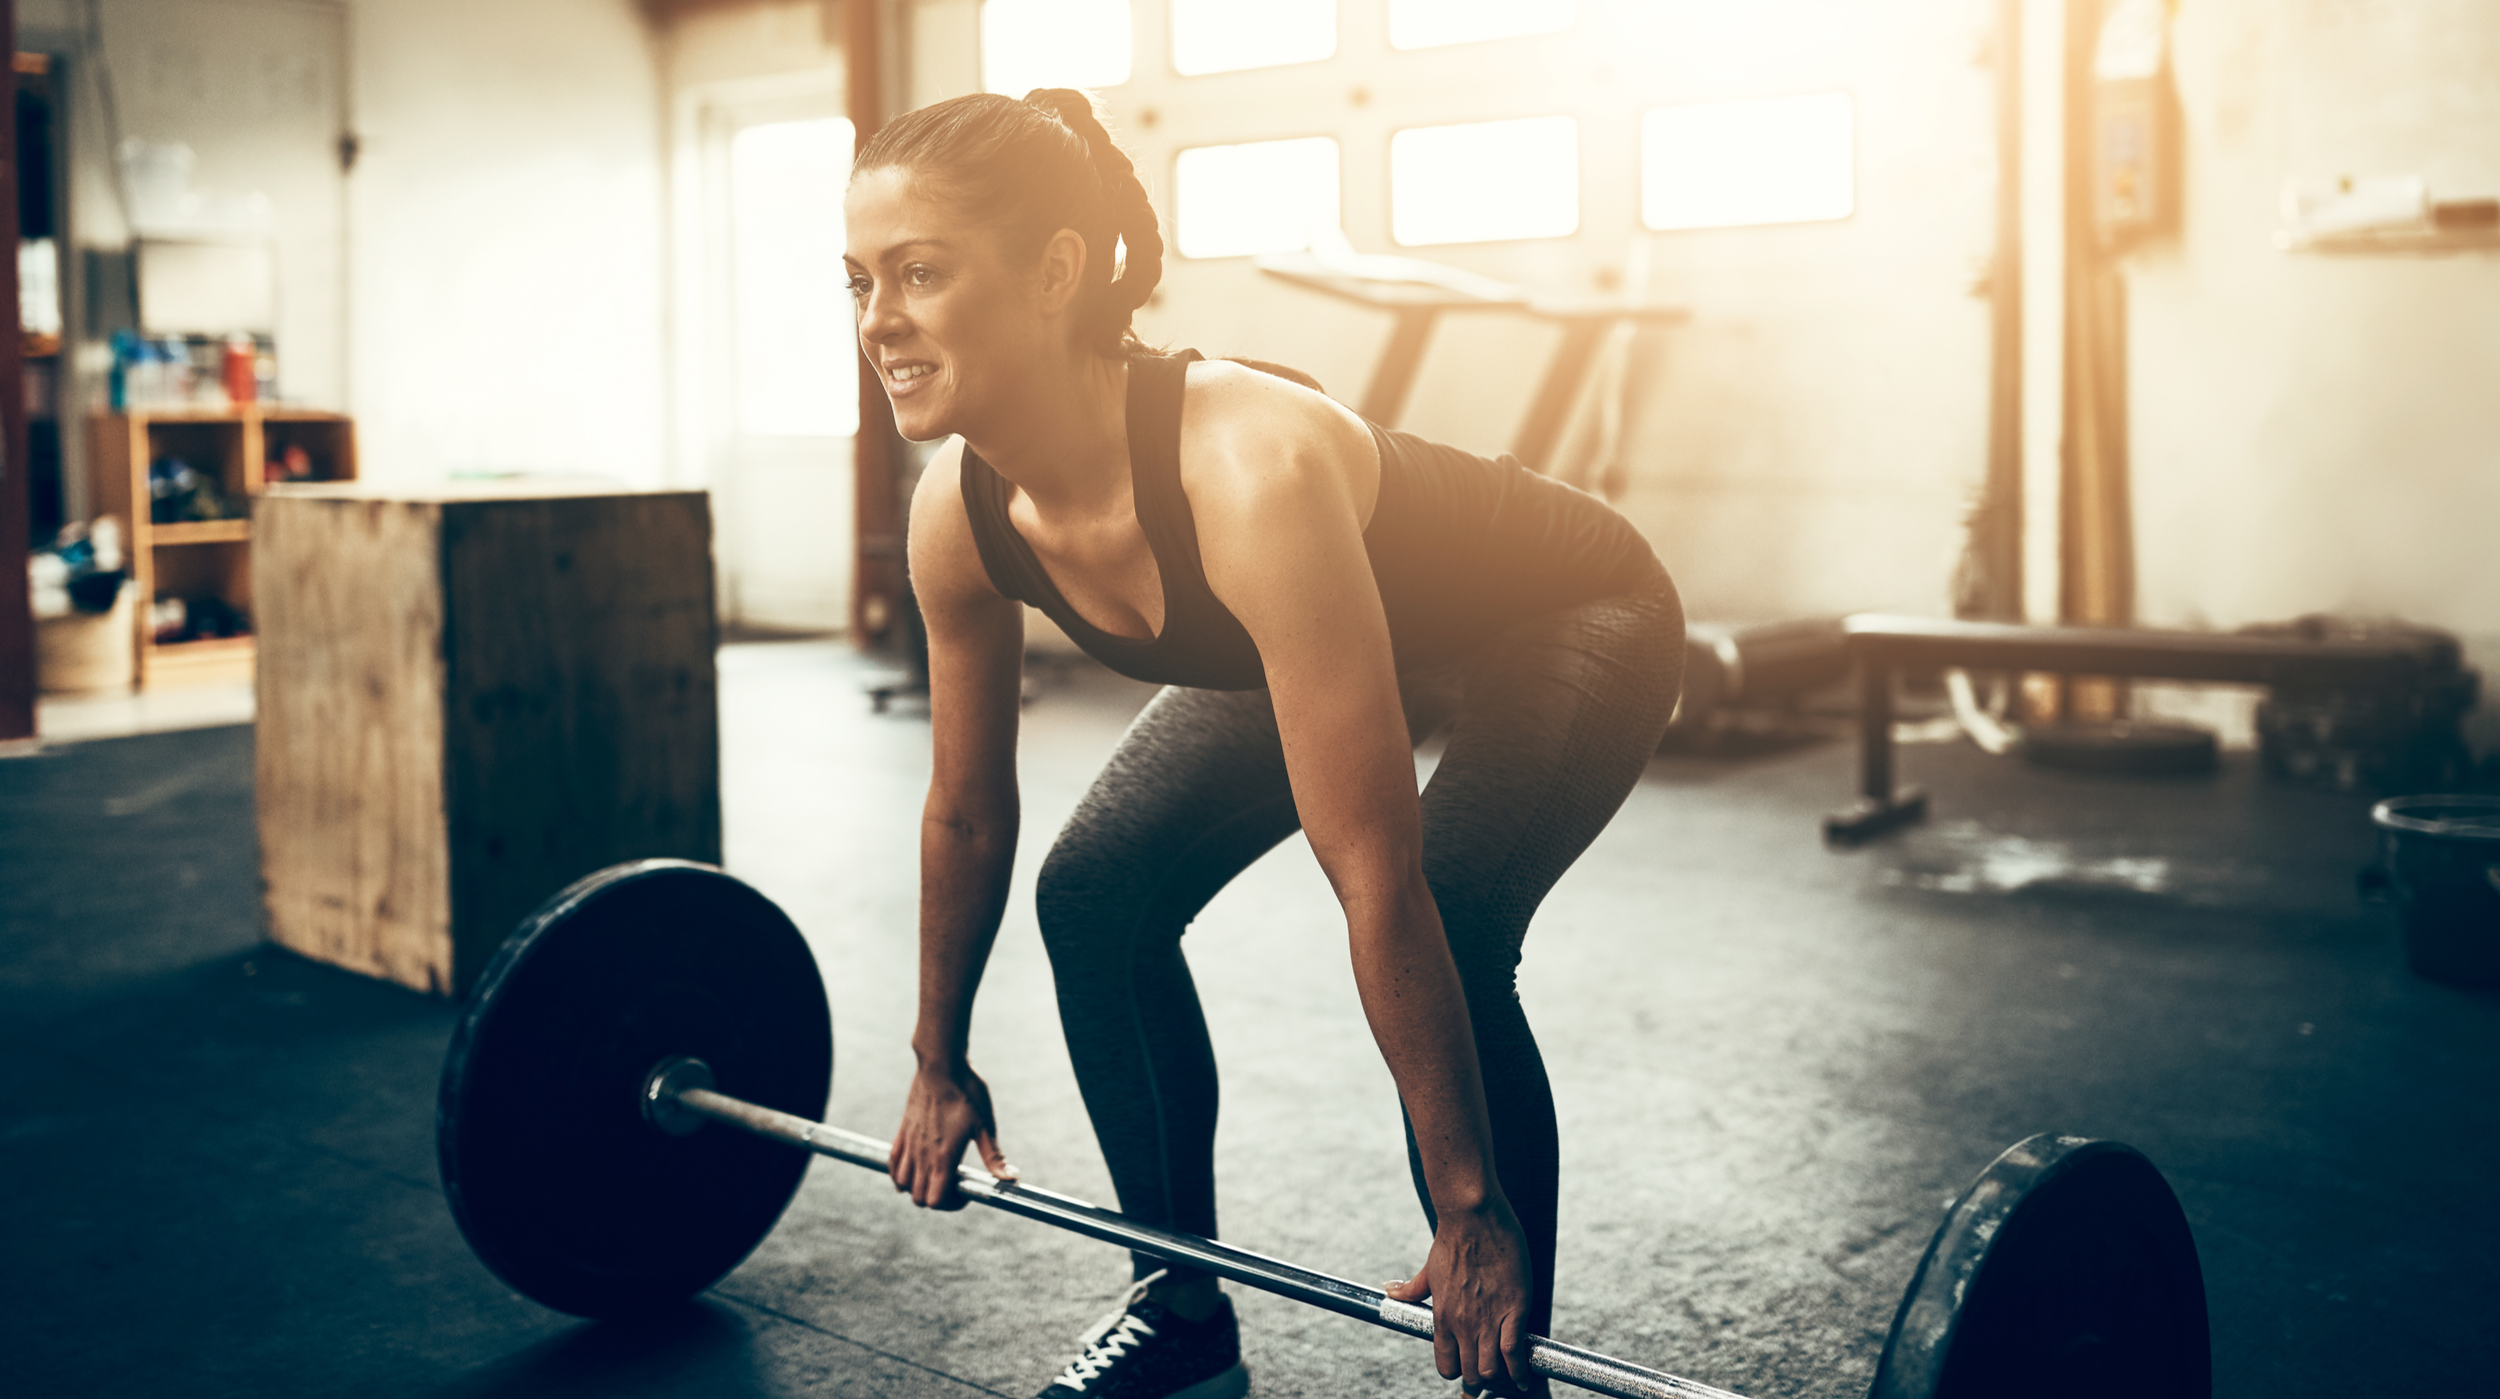 Is Resistance Training the Best Way to Lose Weight for Women?